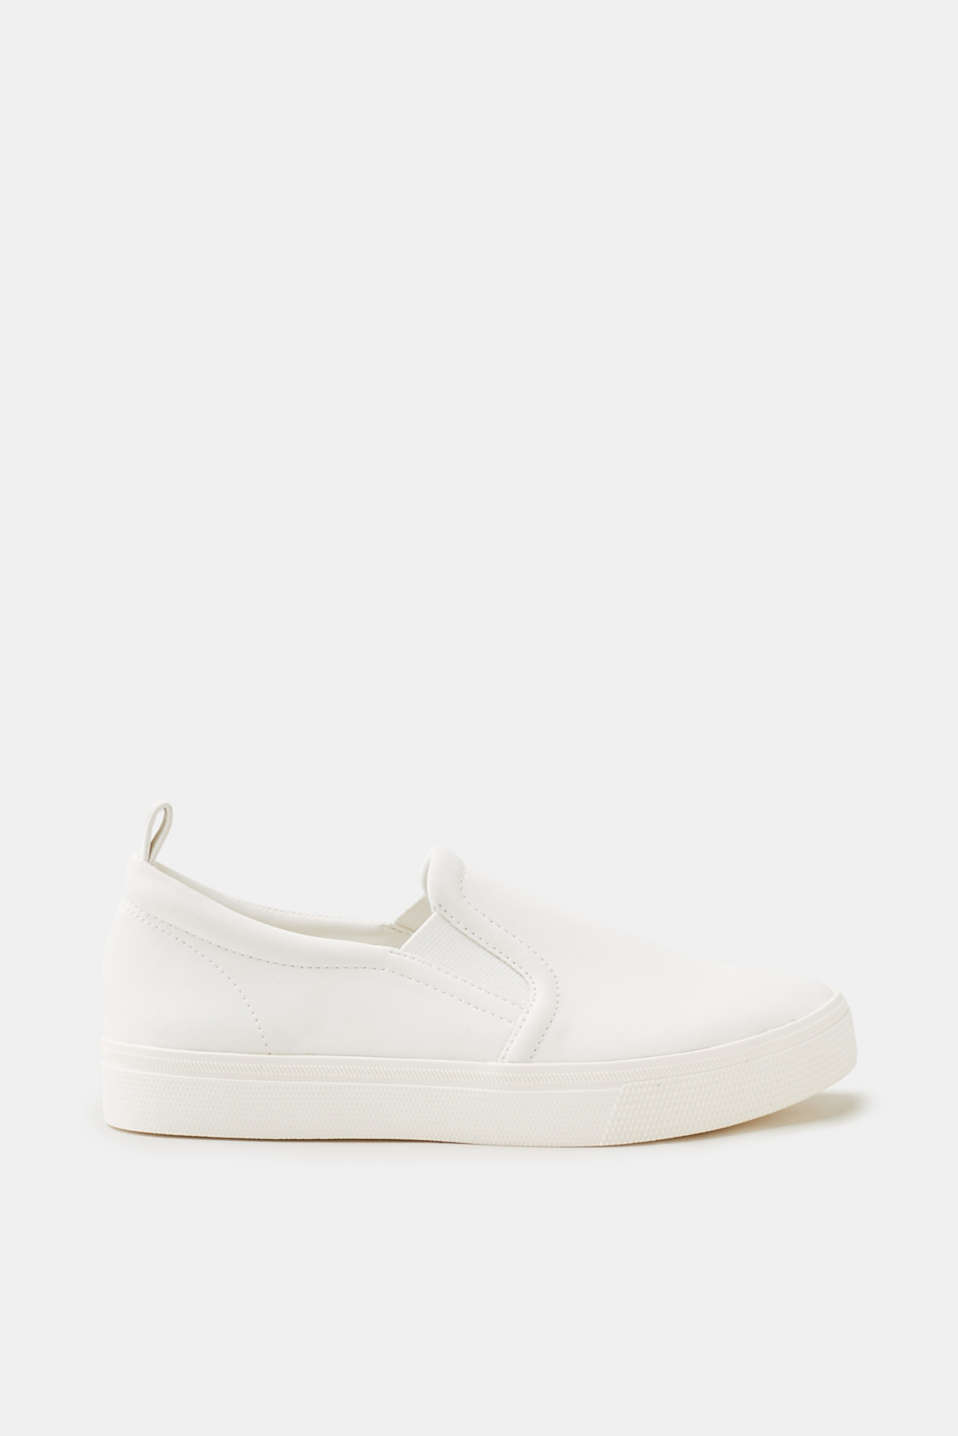 Esprit - Slip On-Sneaker in glatter Leder-Optik